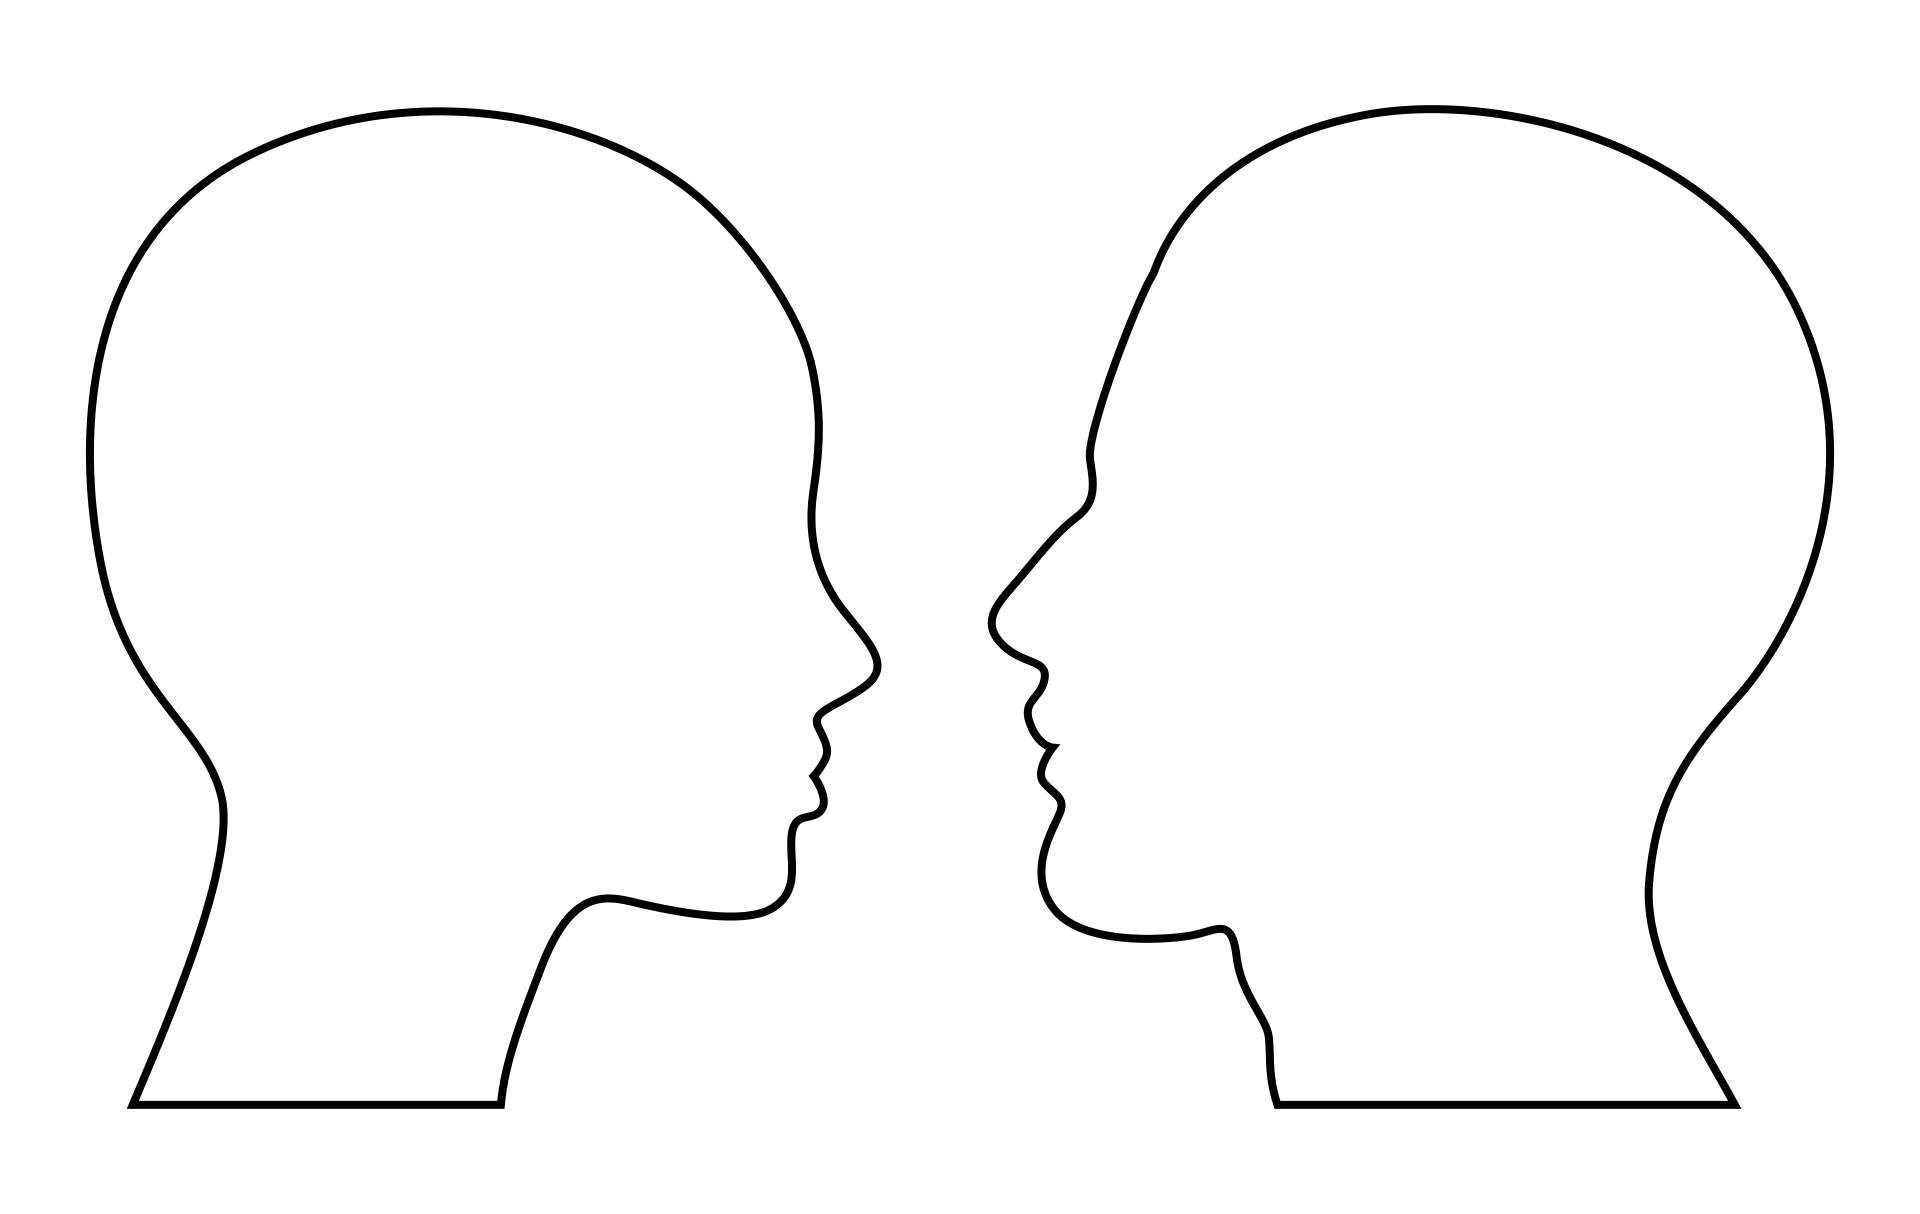 6 Images of Head Template Printable